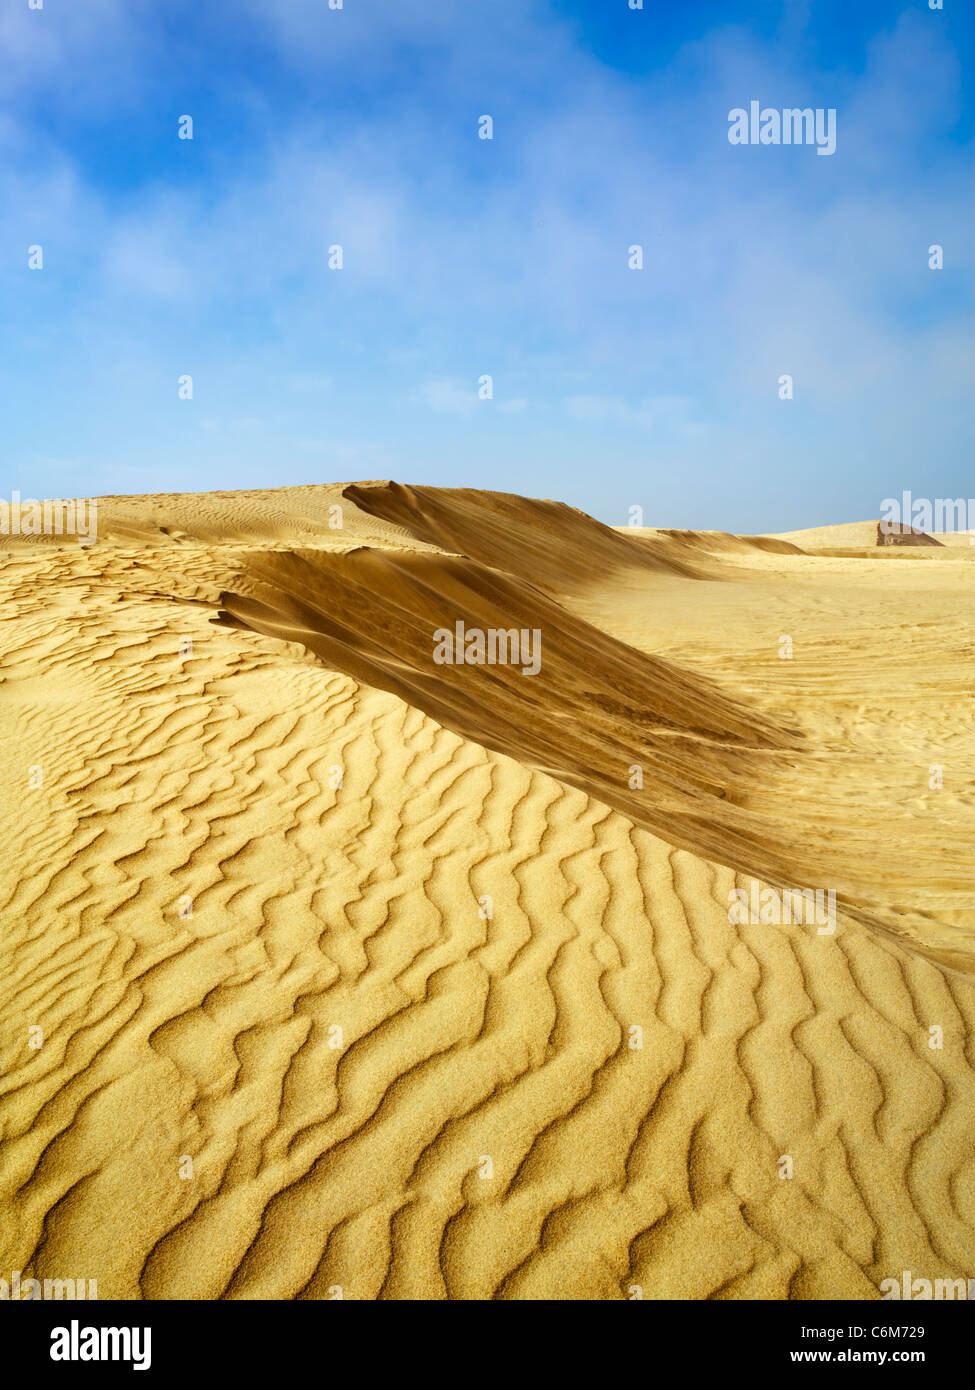 Landschaft aus Sanddünen am Oceano Dünen in Pismo Beach, Kalifornien Stockbild